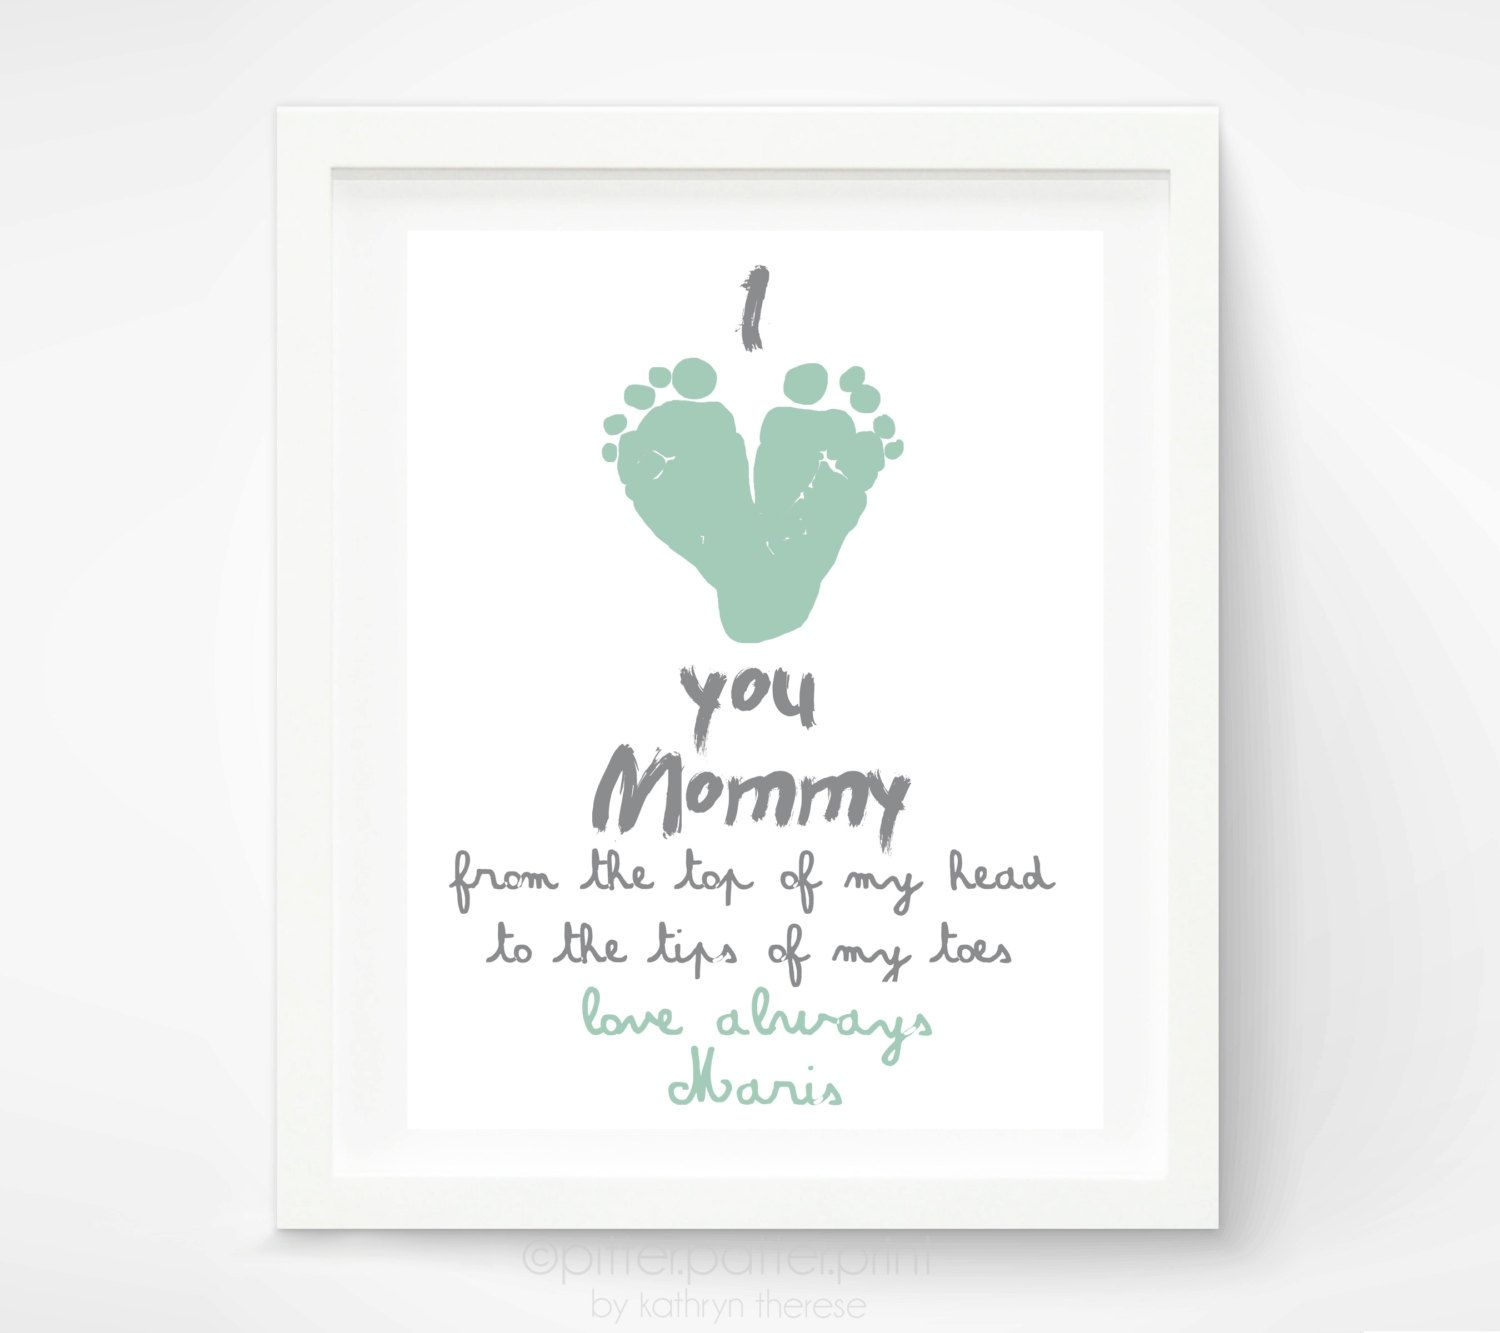 Personalized Motheru0027s Day Gift for New Mom - I Love you Mommy Baby footprint Art -Grandmother - Gift for Grandma.  sc 1 st  Pinterest & Motheru0027s Day Personalized Gift for New Mom I Love you Mommy Baby ...